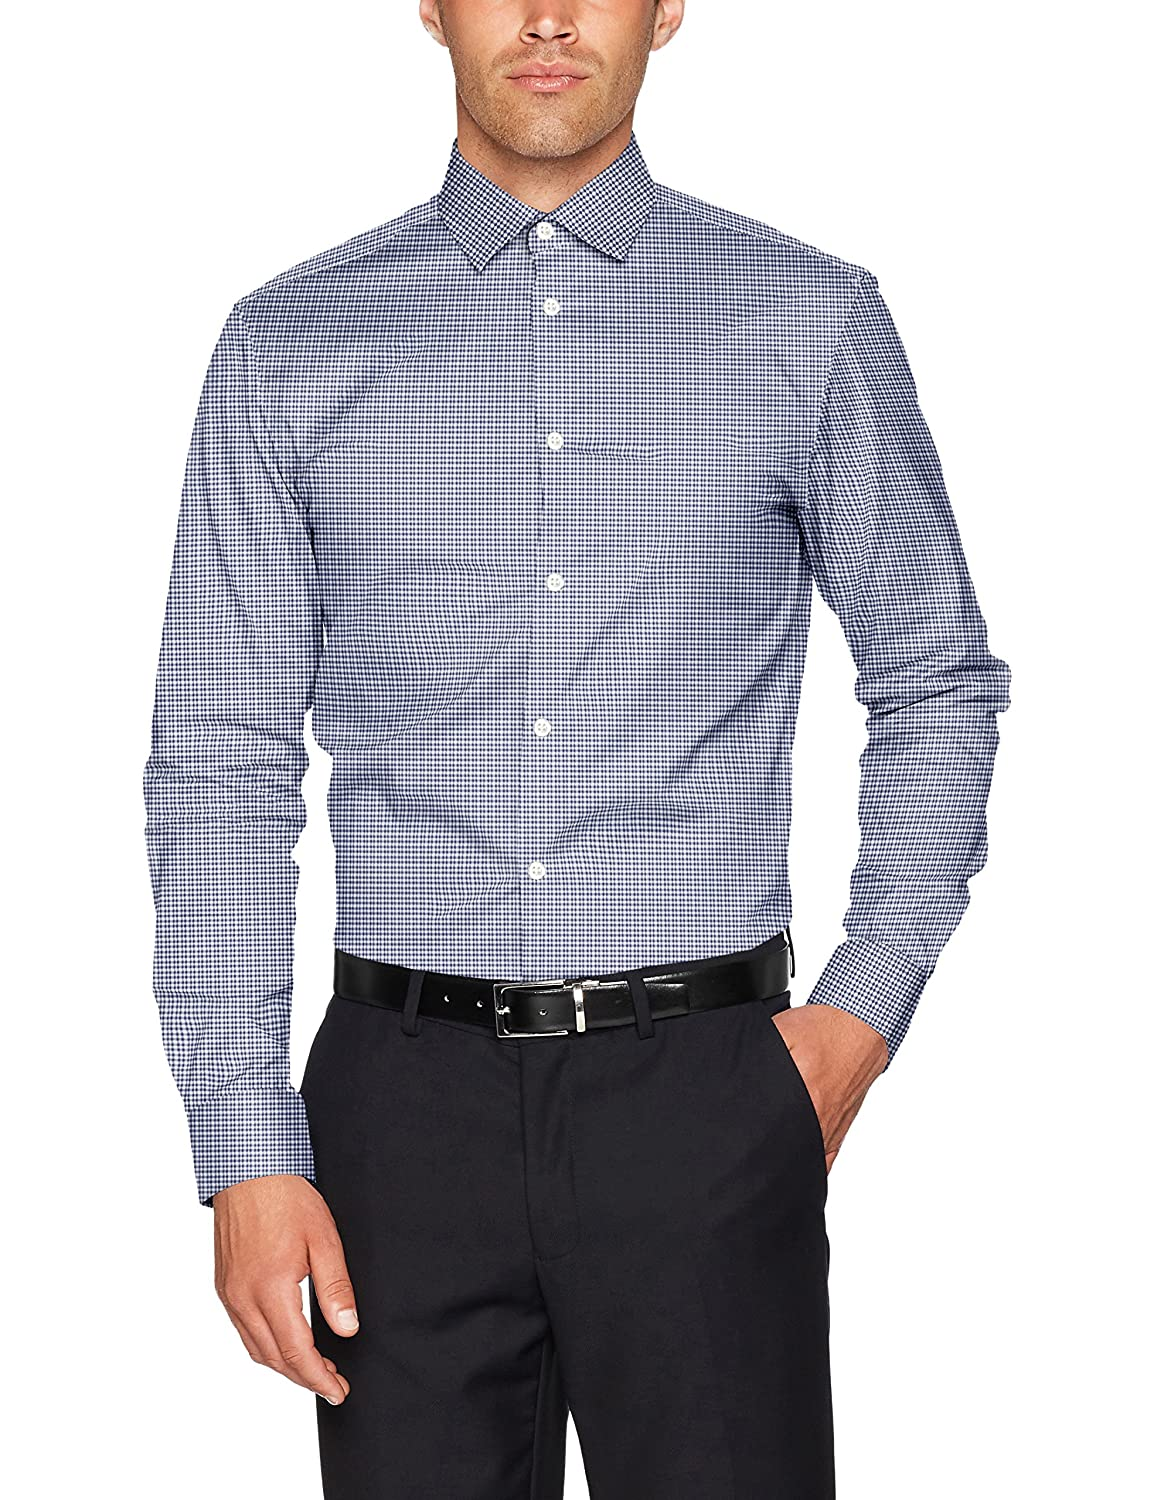 SELECTED HOMME Shdonenew-Mark Shirt LS Noos, Camicia Formale Uomo 16058640